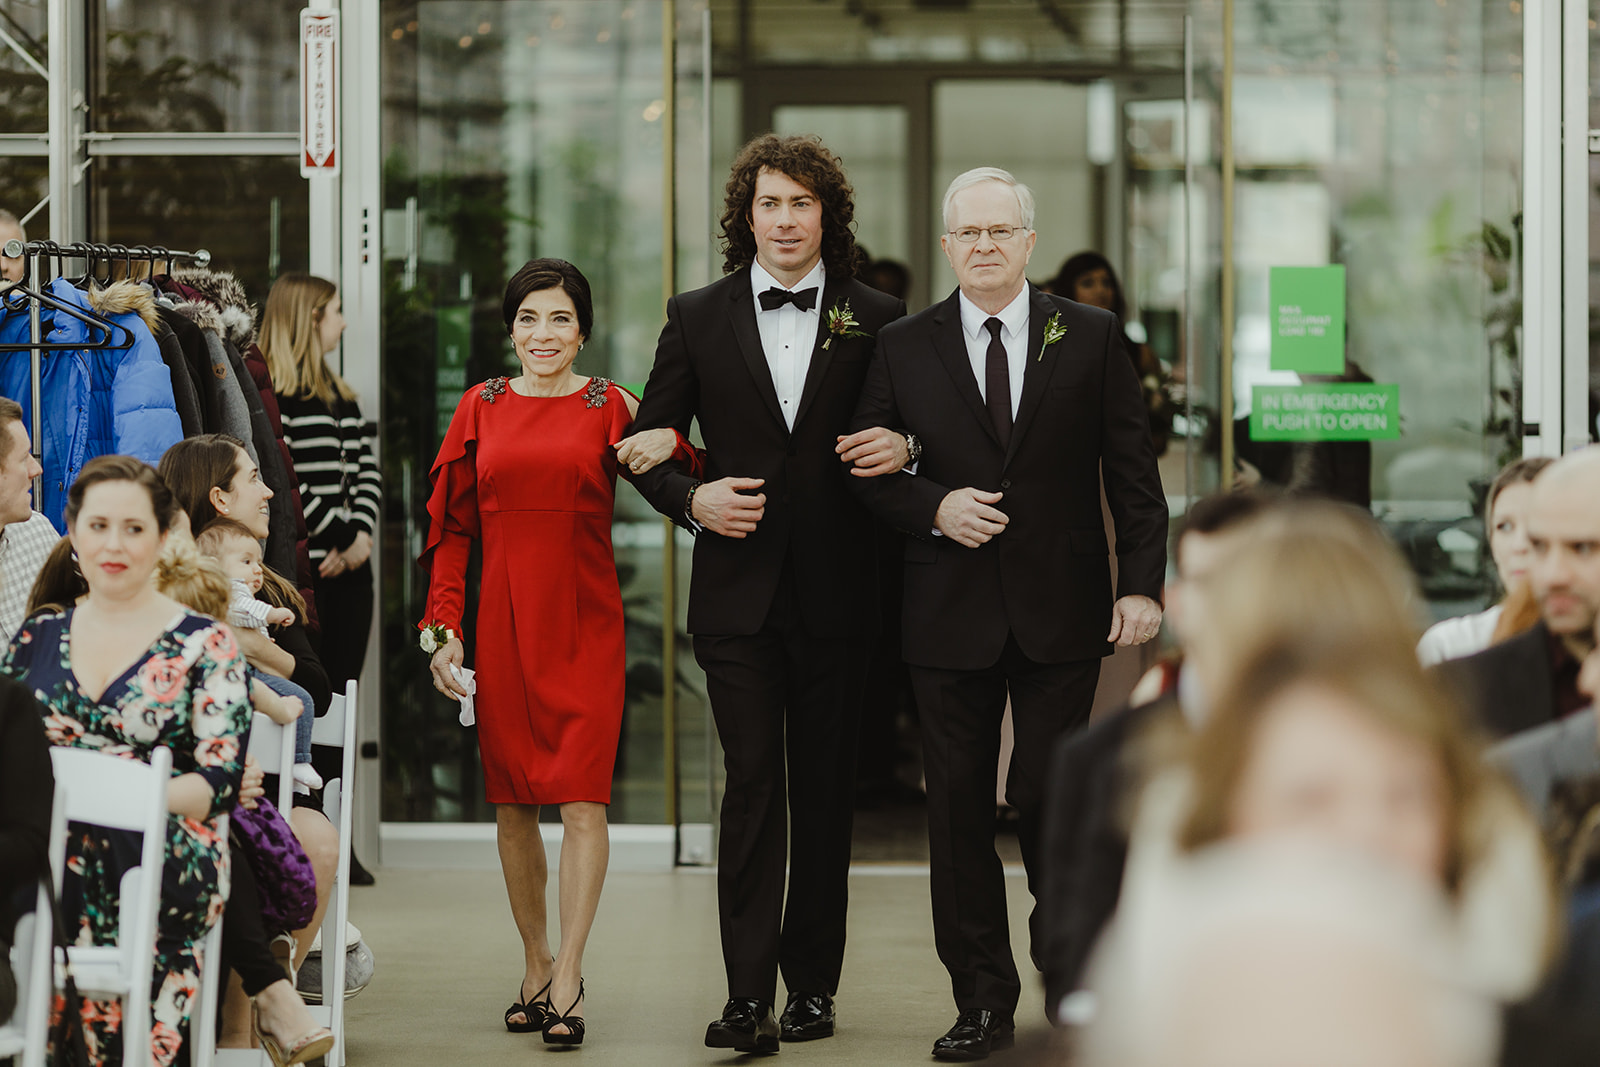 A groom walking his parents down the aisle